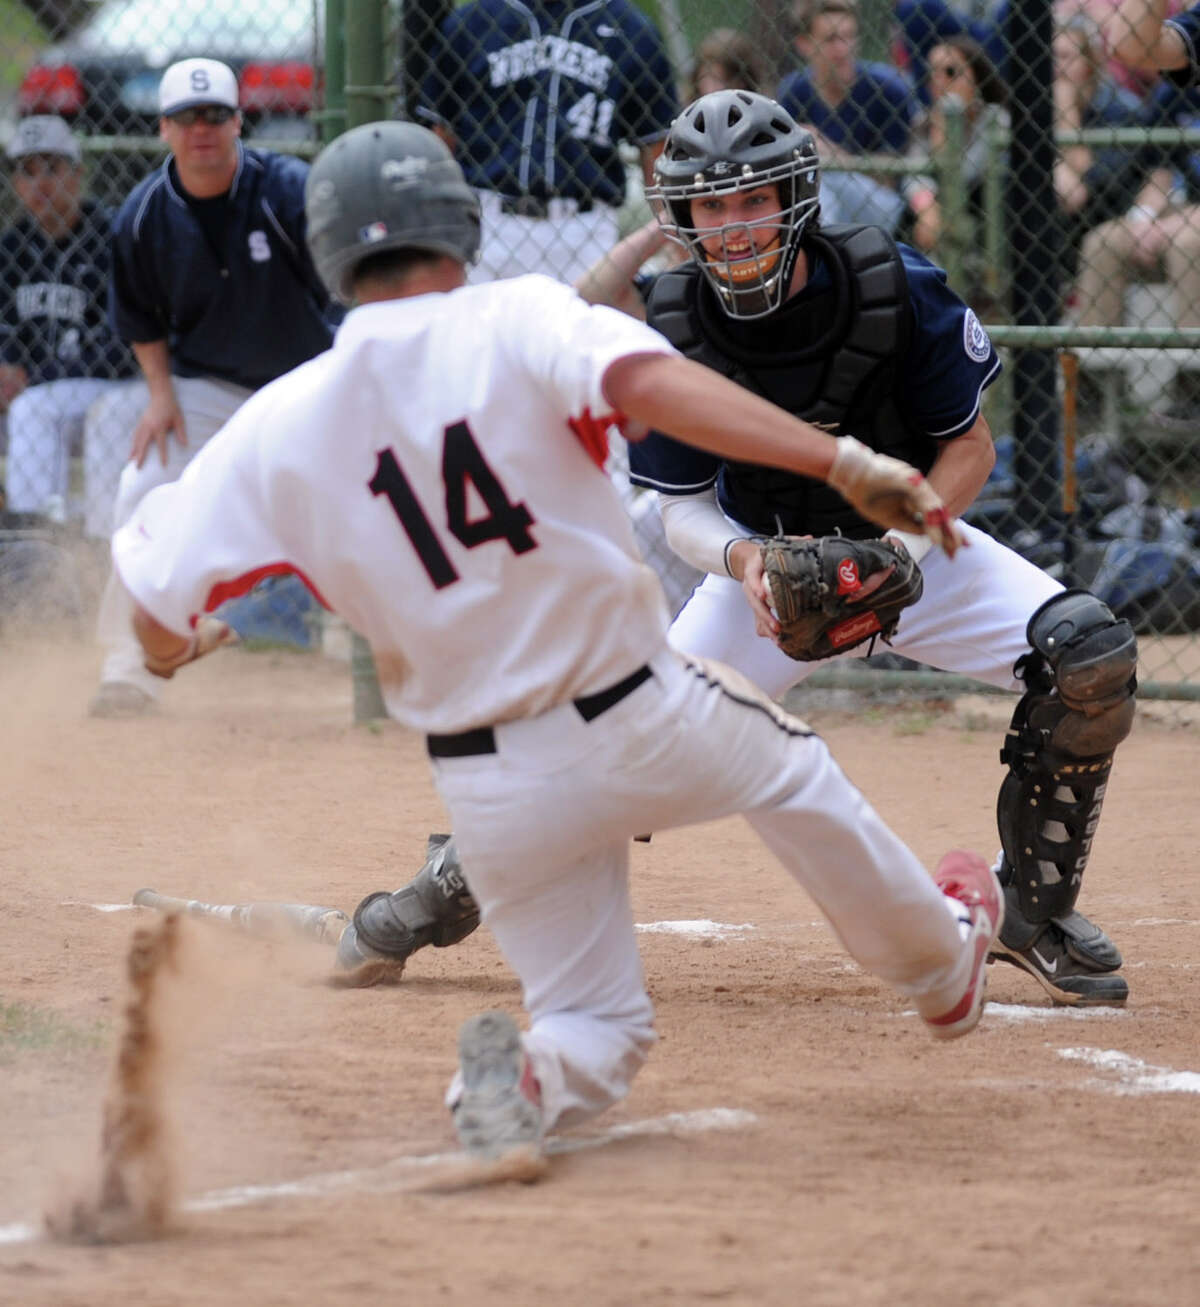 New Canaan's Gordon Jones slides to home plate as Staples catcher James Frusciante tags hime out during Friday's game at Mead Park in New Canaan on April 20, 2012.